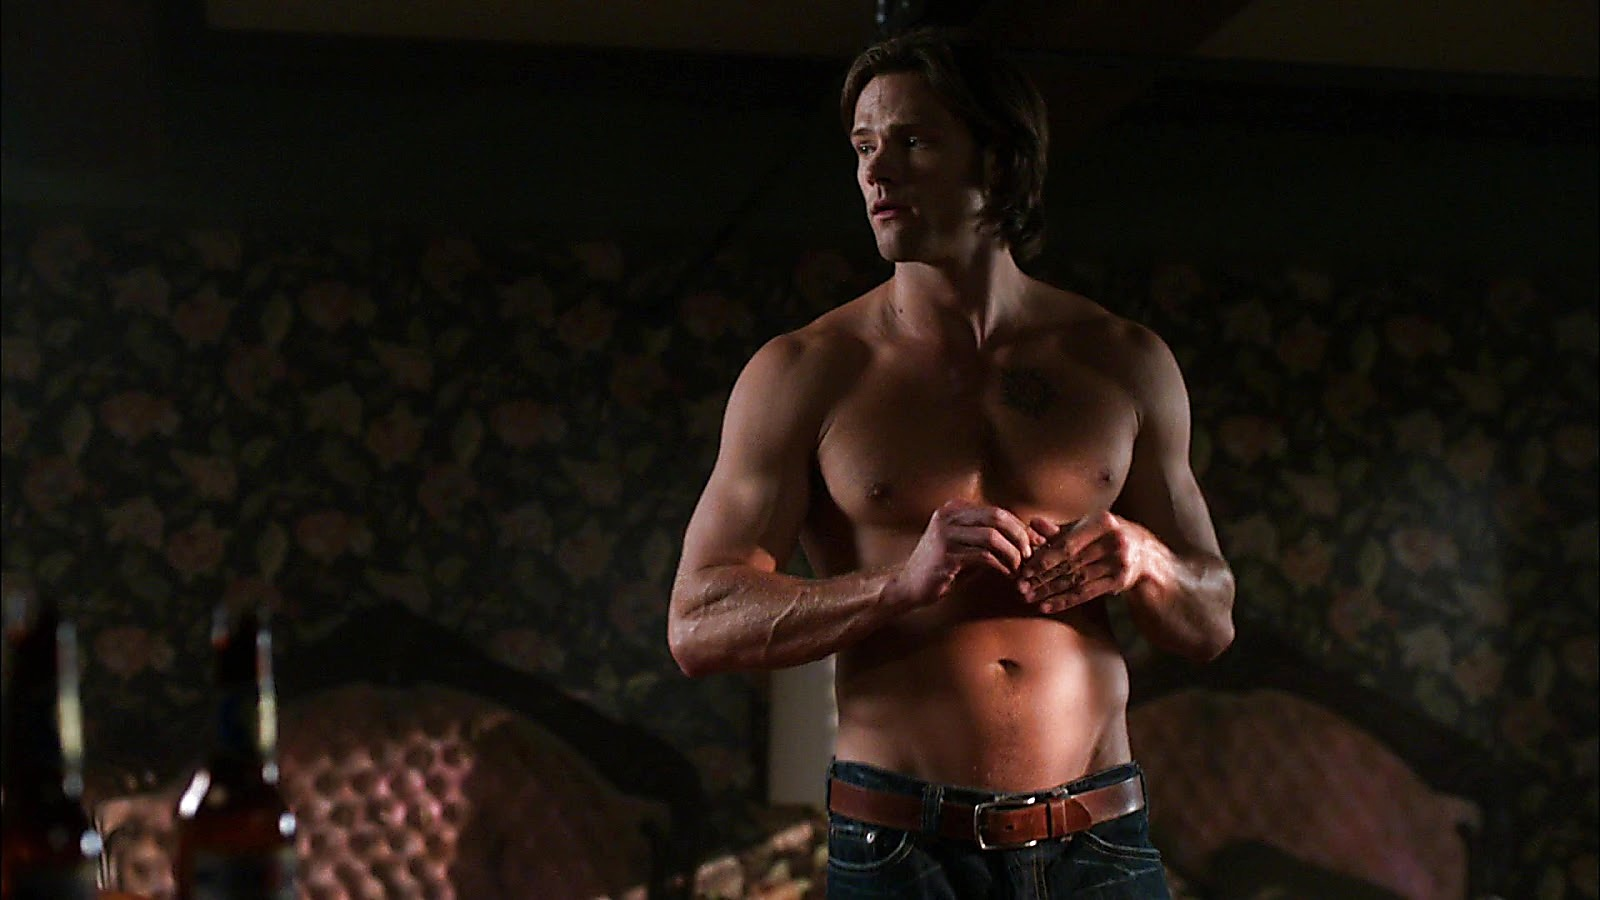 Jared Padalecki Supernatural S06E03 2020 04 10 1586515440 2